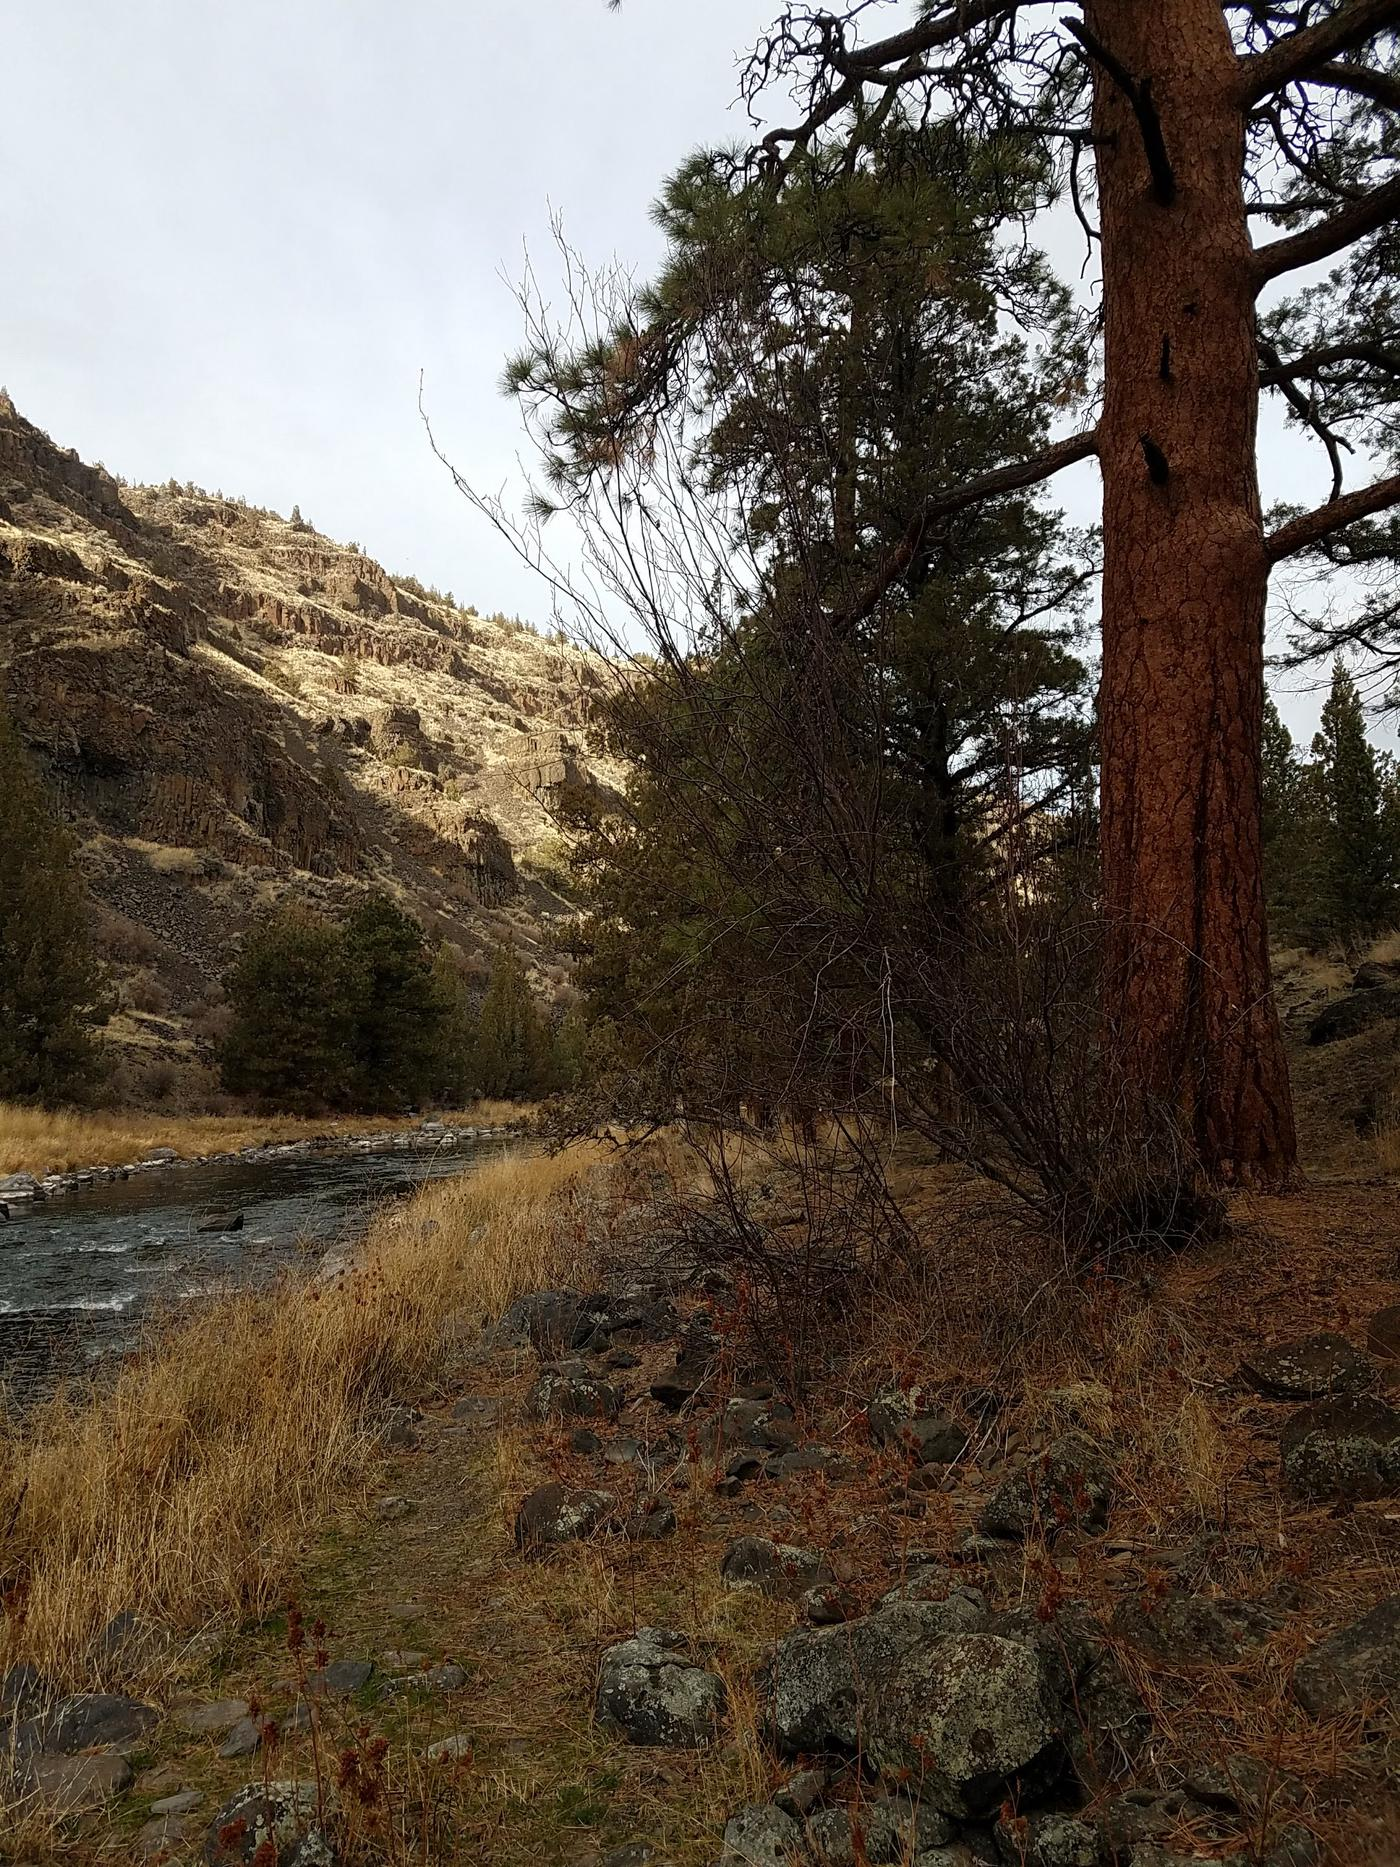 Ponderosa Pine Tree at Poison Butte Campground